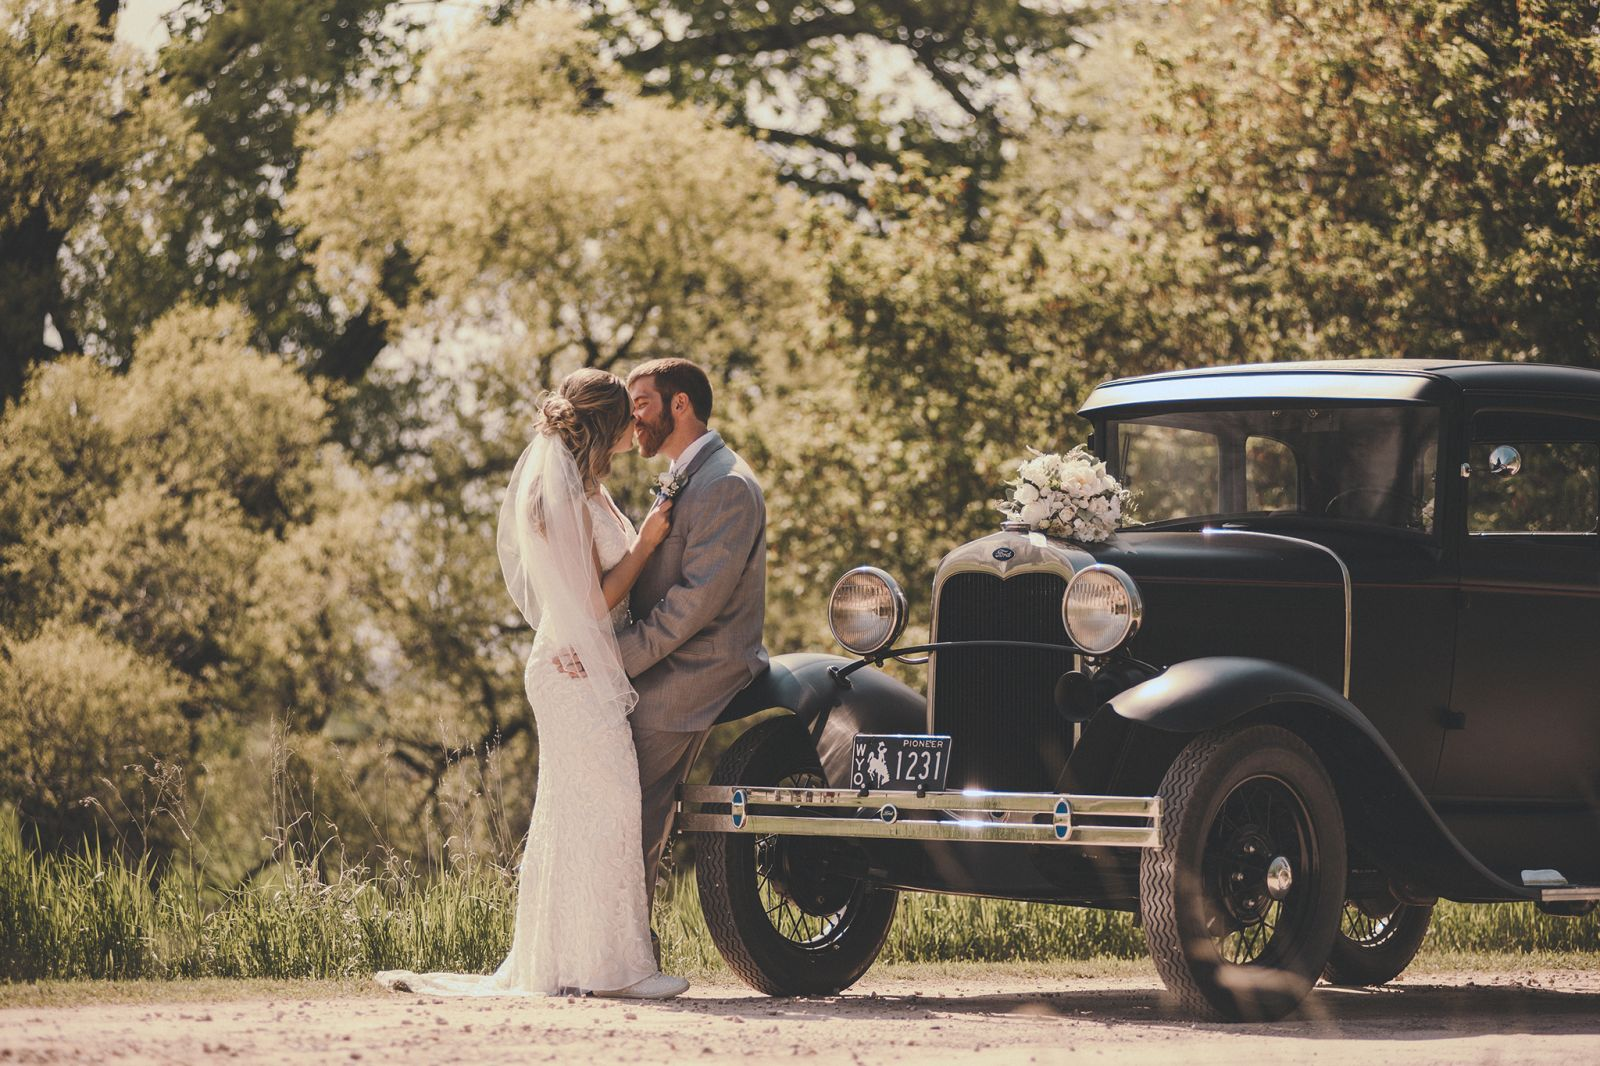 Newcastle WY wedding couple posed on a vintage car